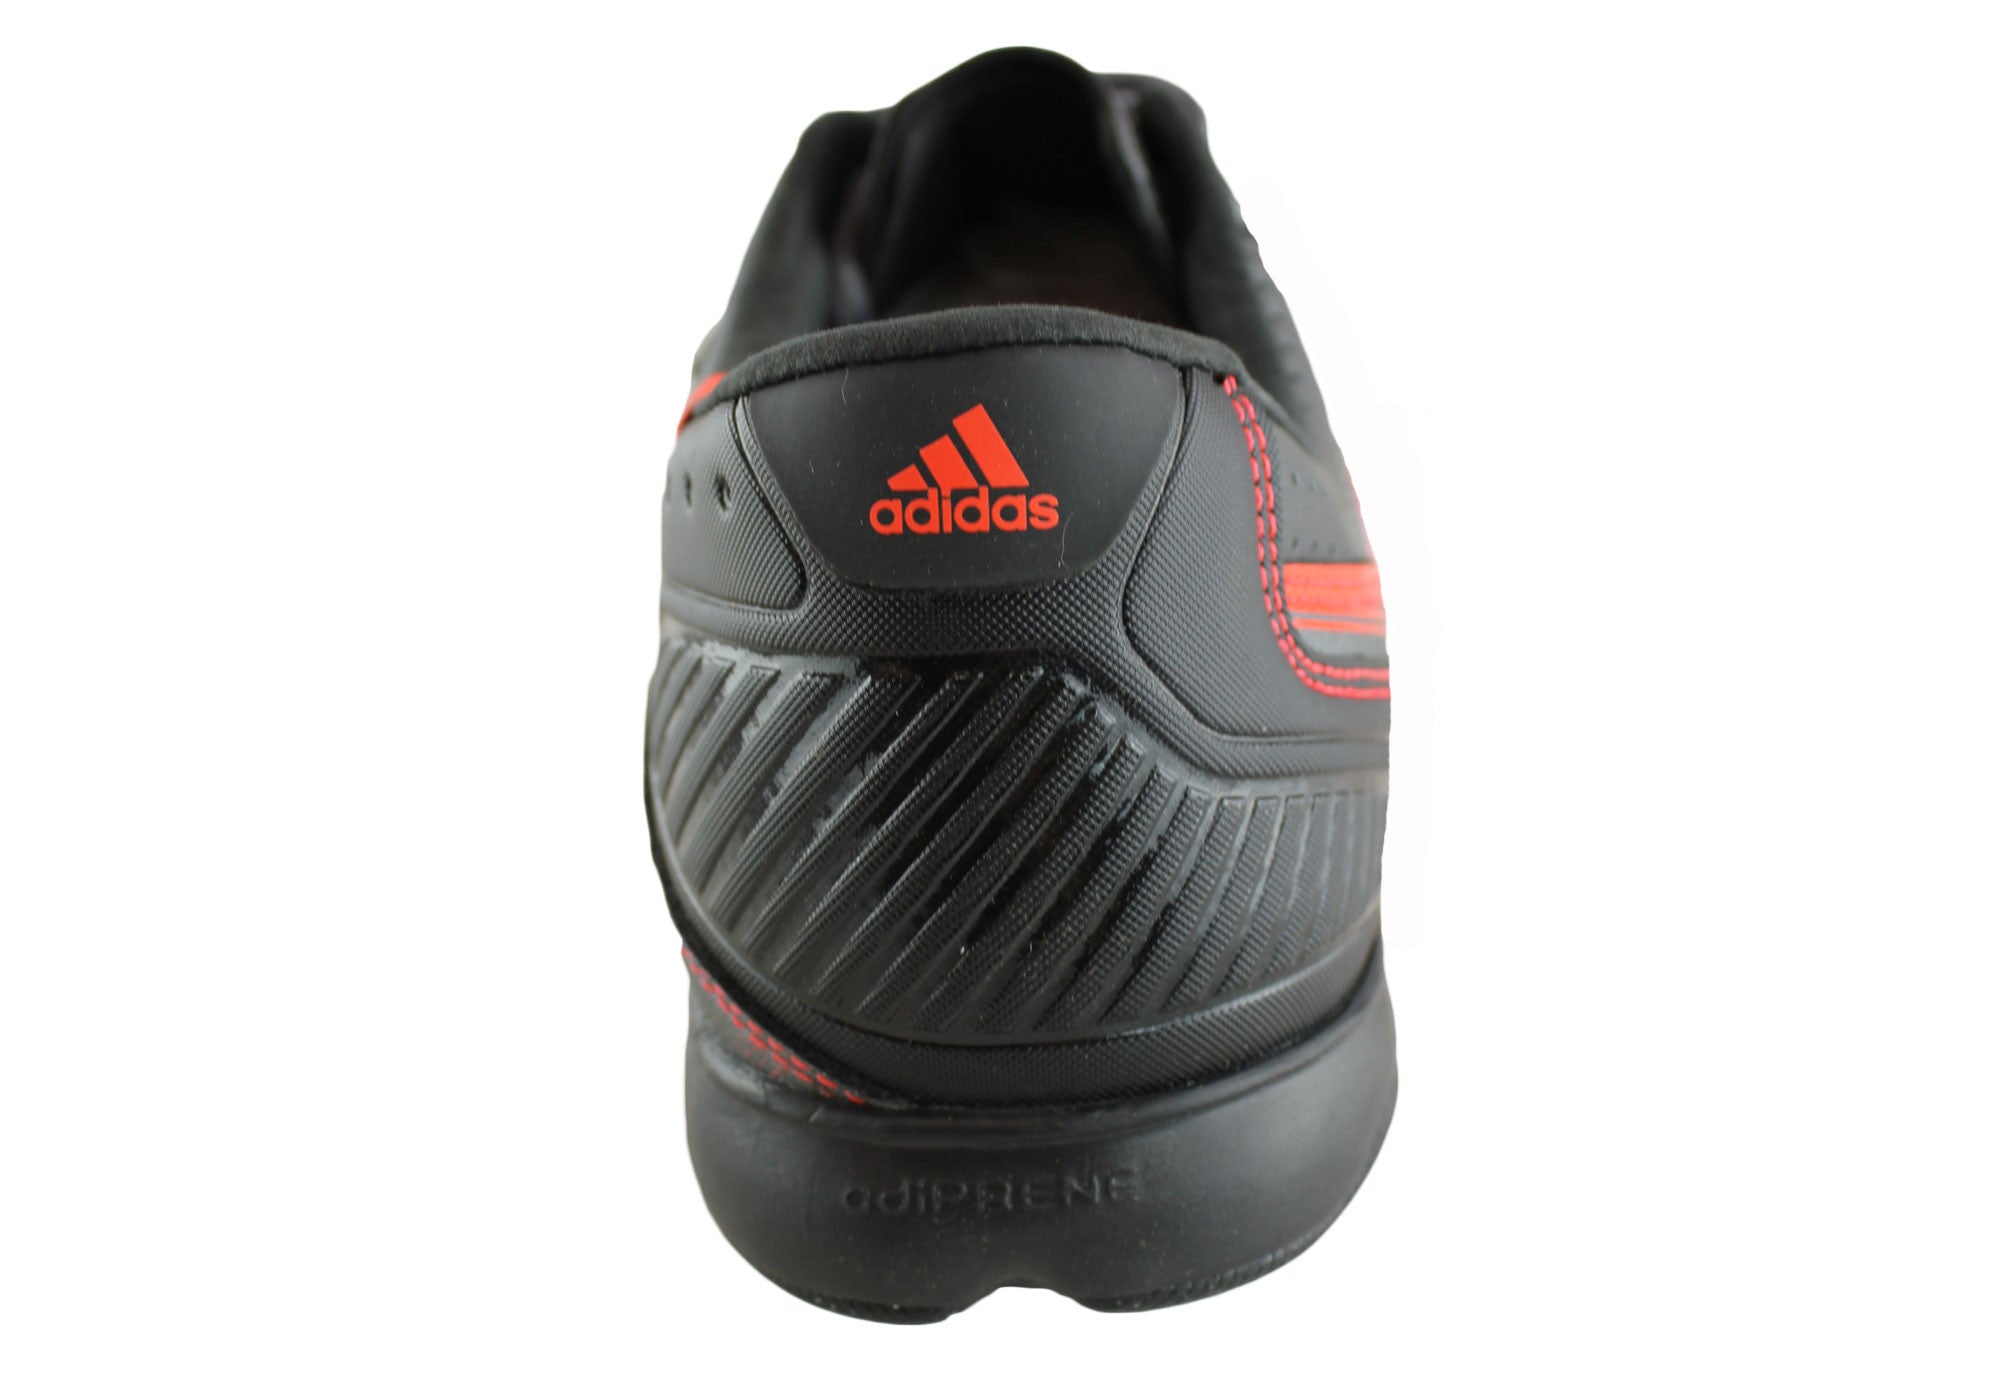 ADIDAS ADI5 MENS SNEAKERS SHOES